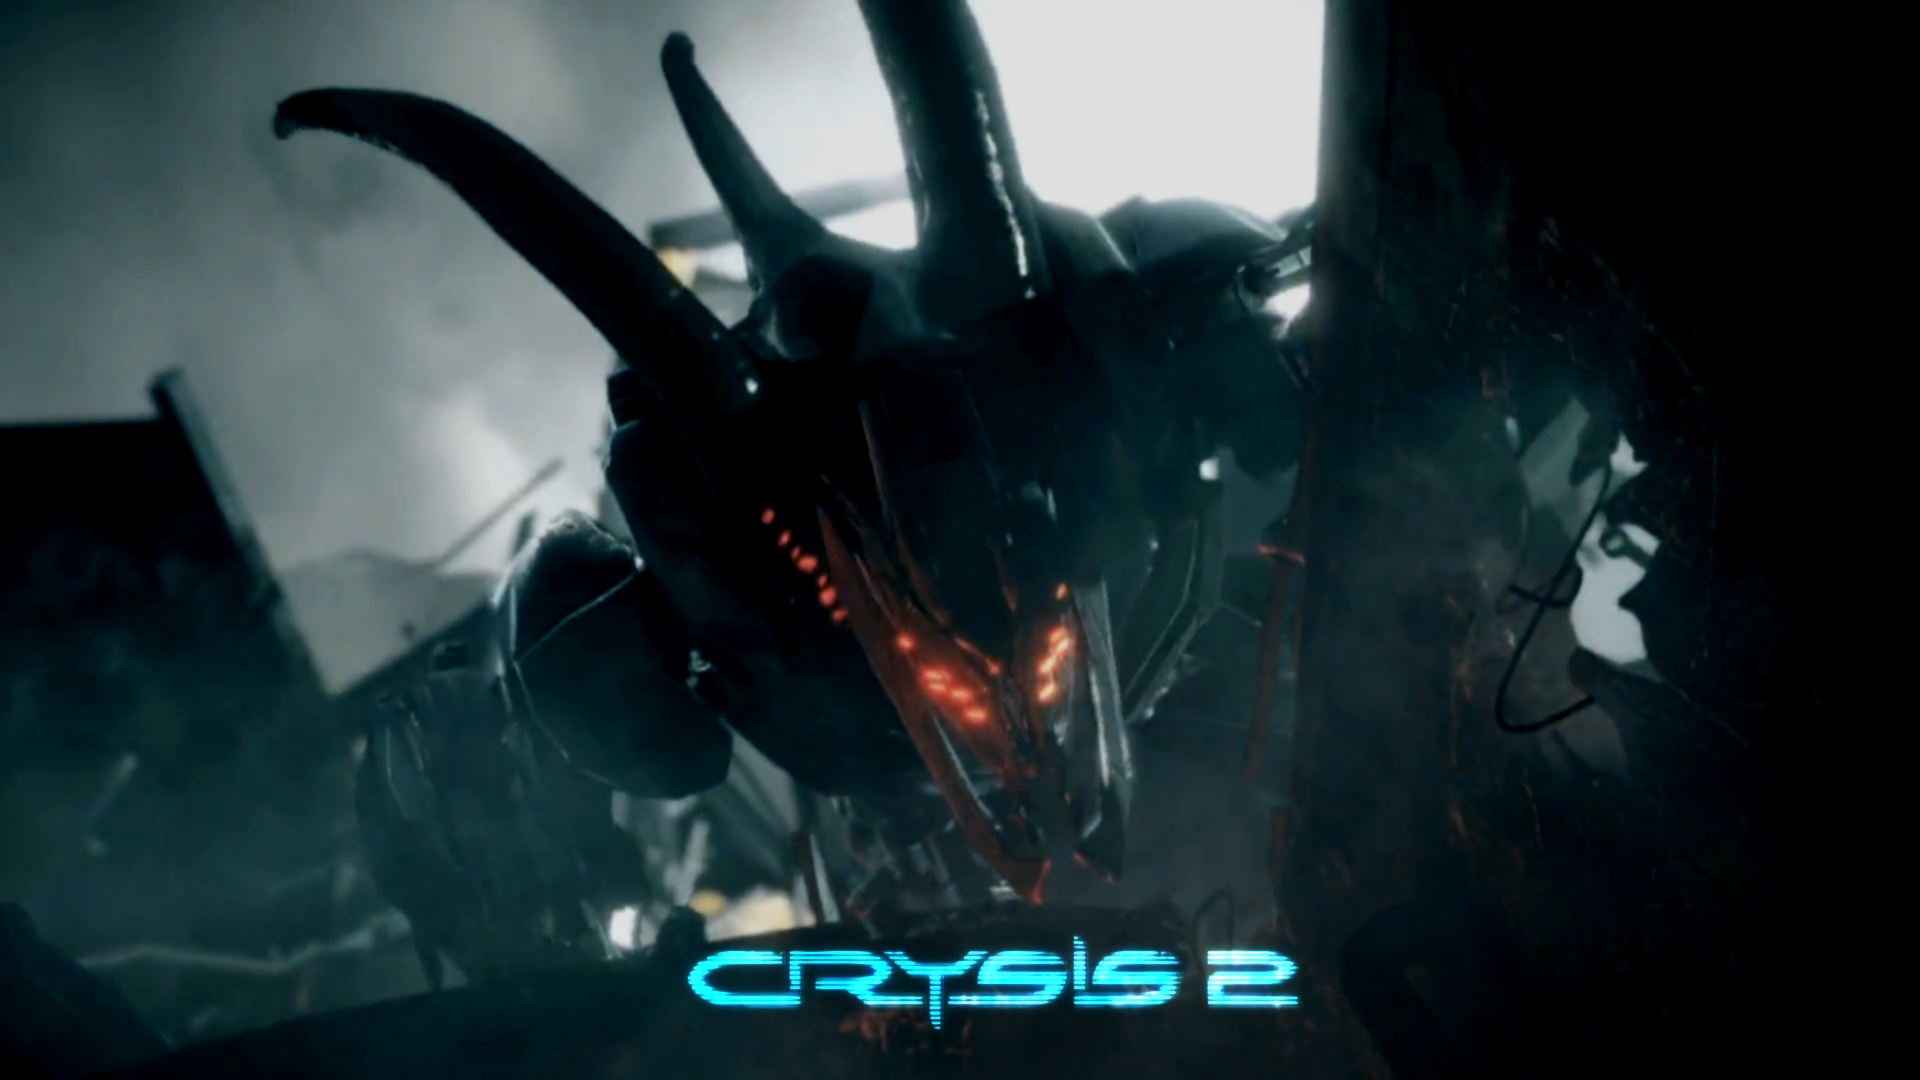 Demo de Crysis 2 llegará a PC [F*ck Yeah!]